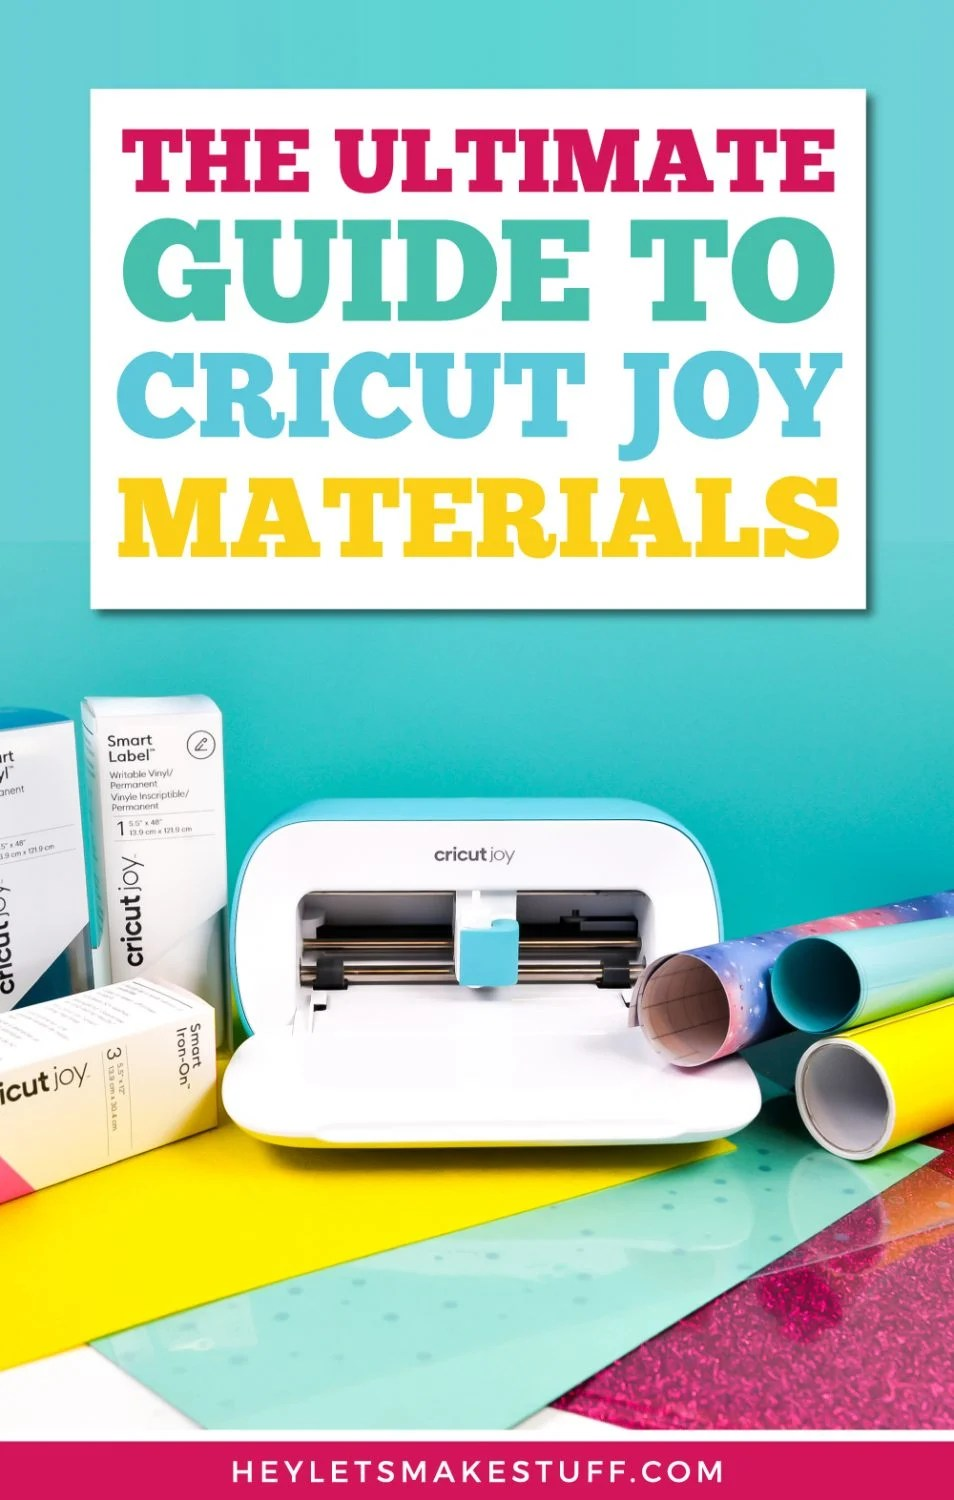 the Ultimate Guide to Cricut Joy Materials Pin Image